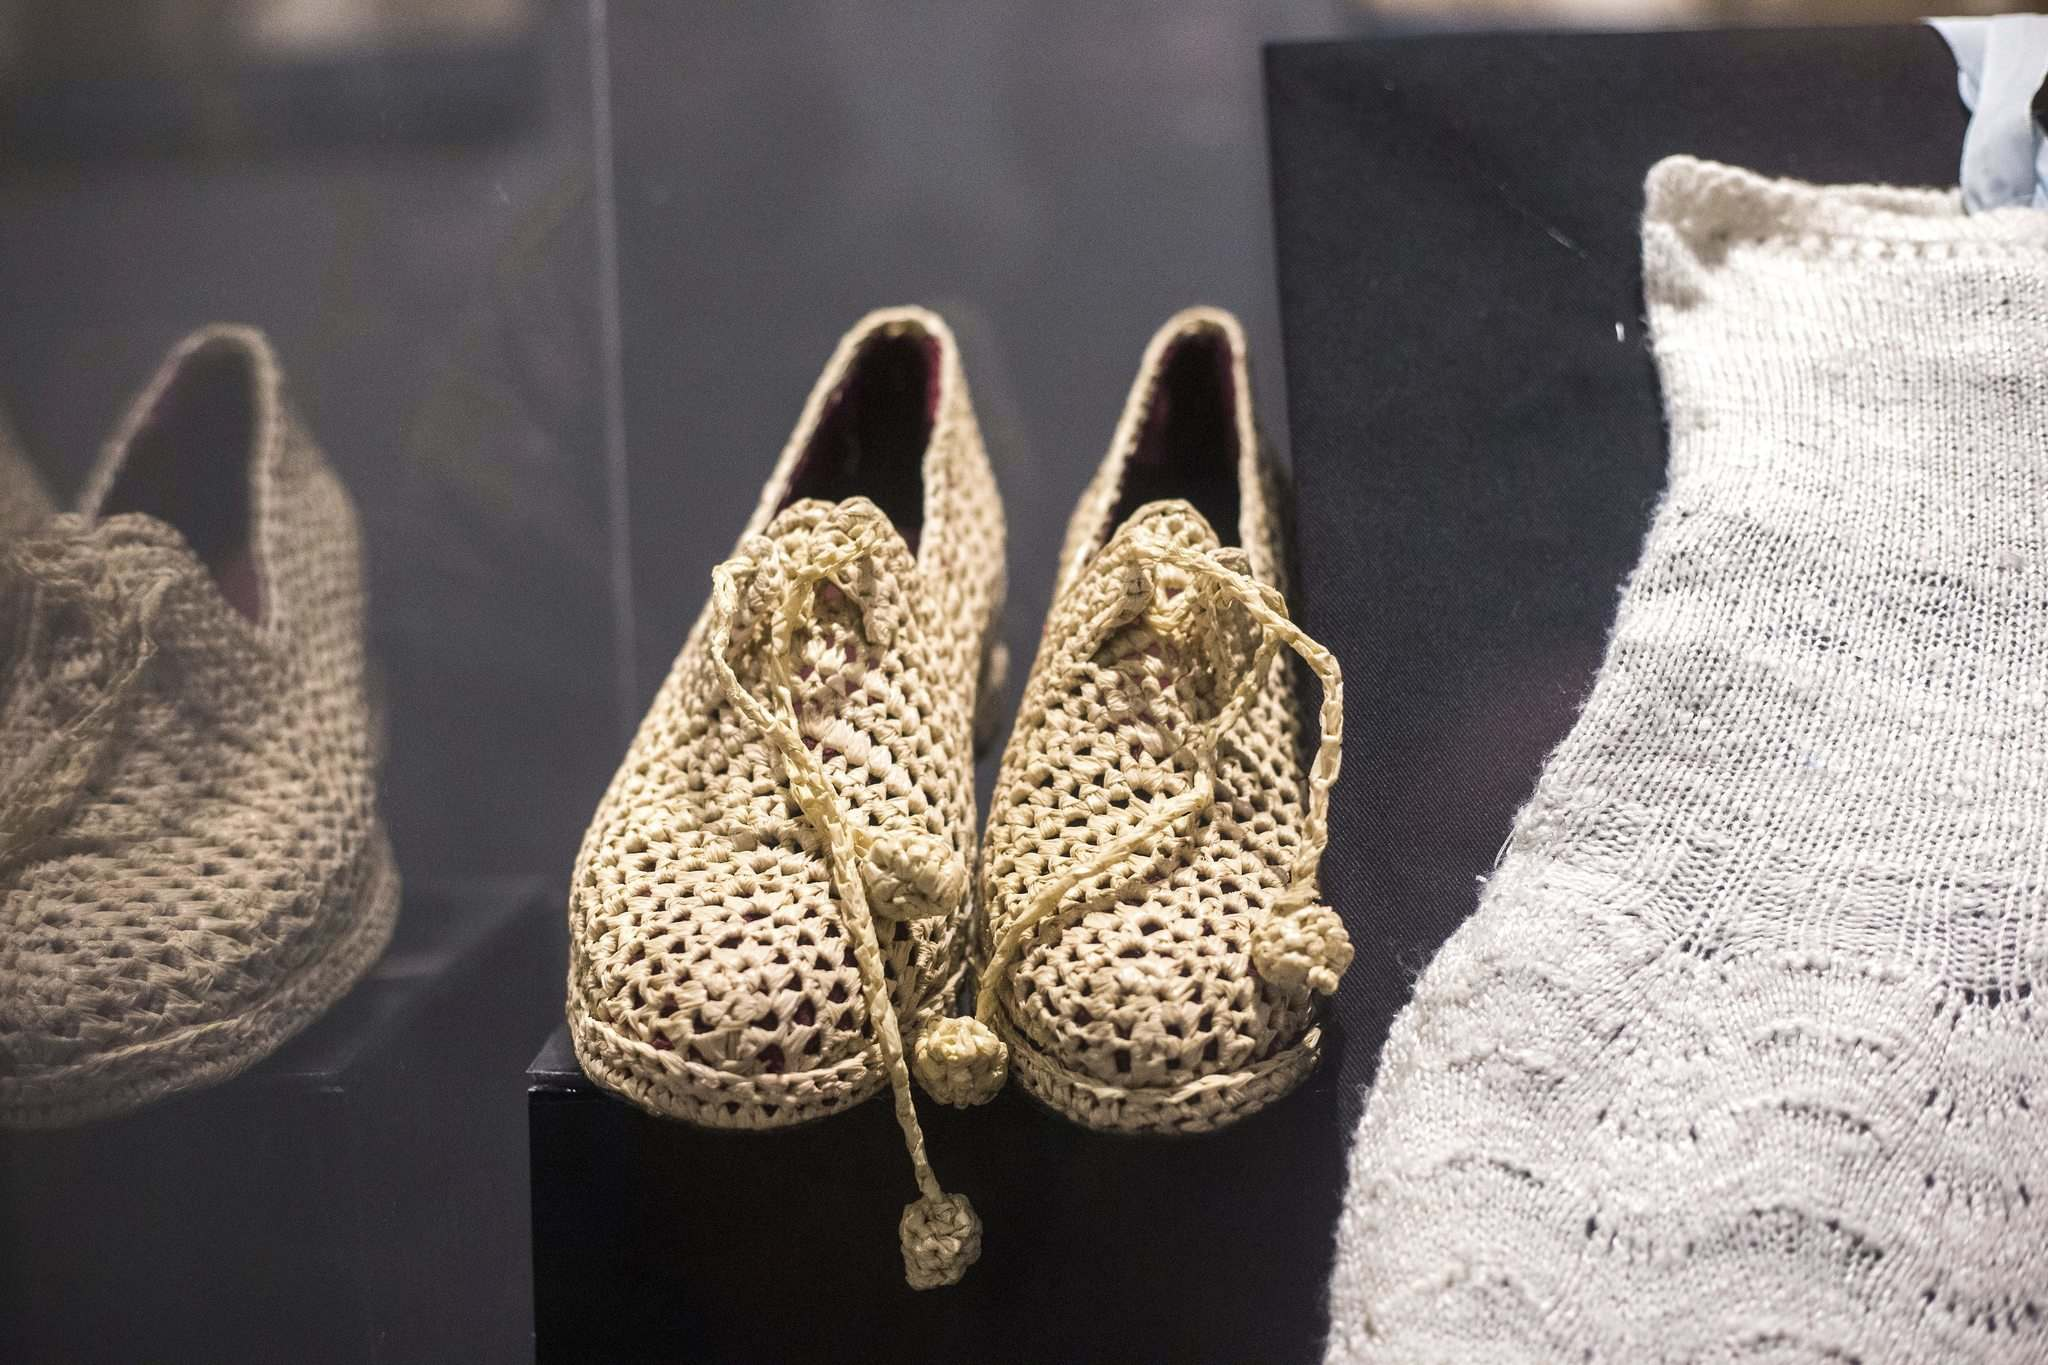 Homemade shoes (likely made of straw) are part of the Mennonites at War exhibition, which contains many donated items. (Mikaela MacKenzie / Winnipeg Free Press)</p>